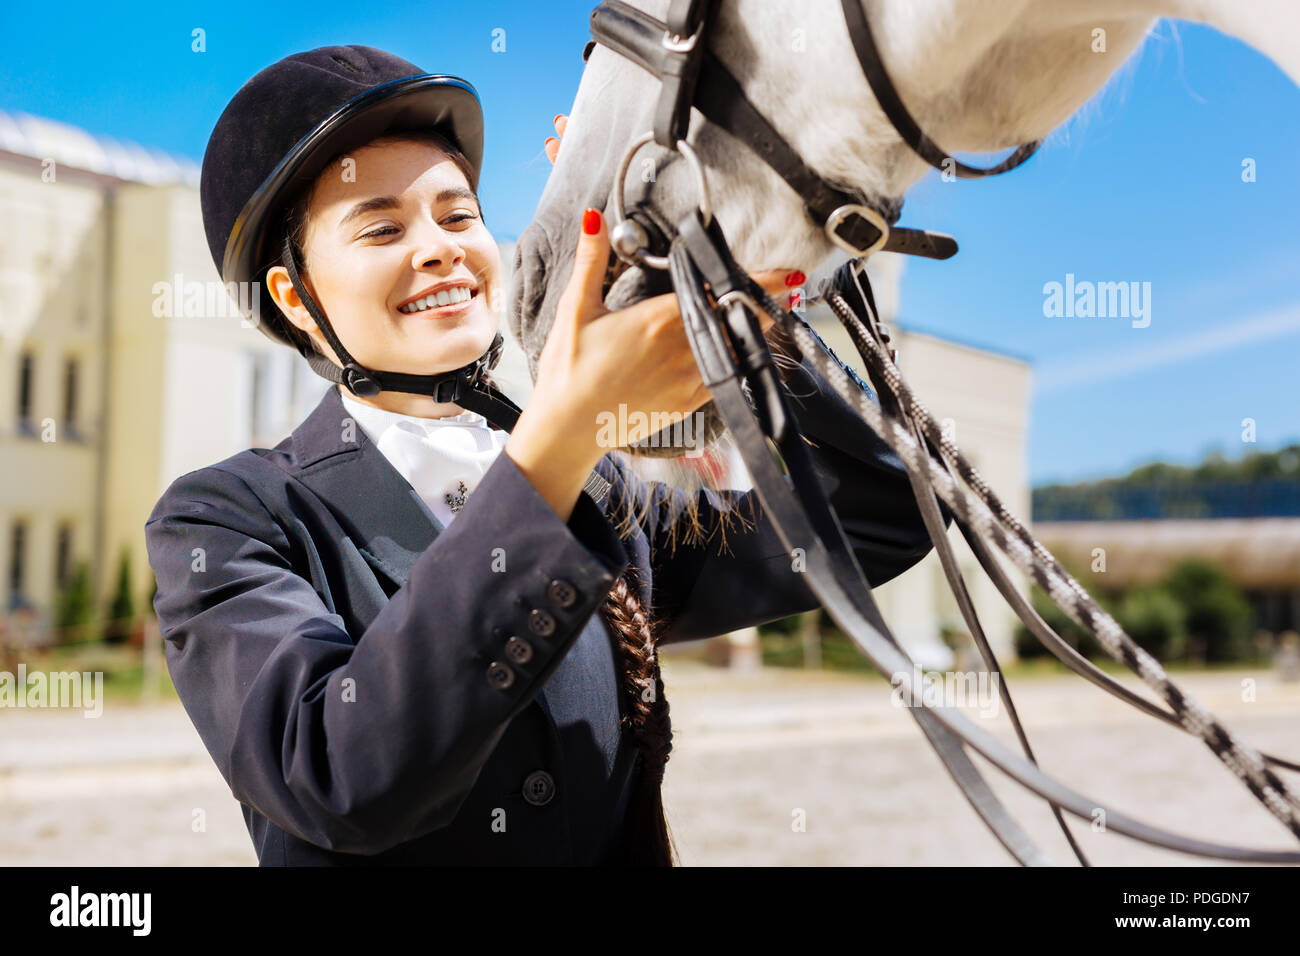 Woman wearing dark jacket taking care of white racing horse - Stock Image